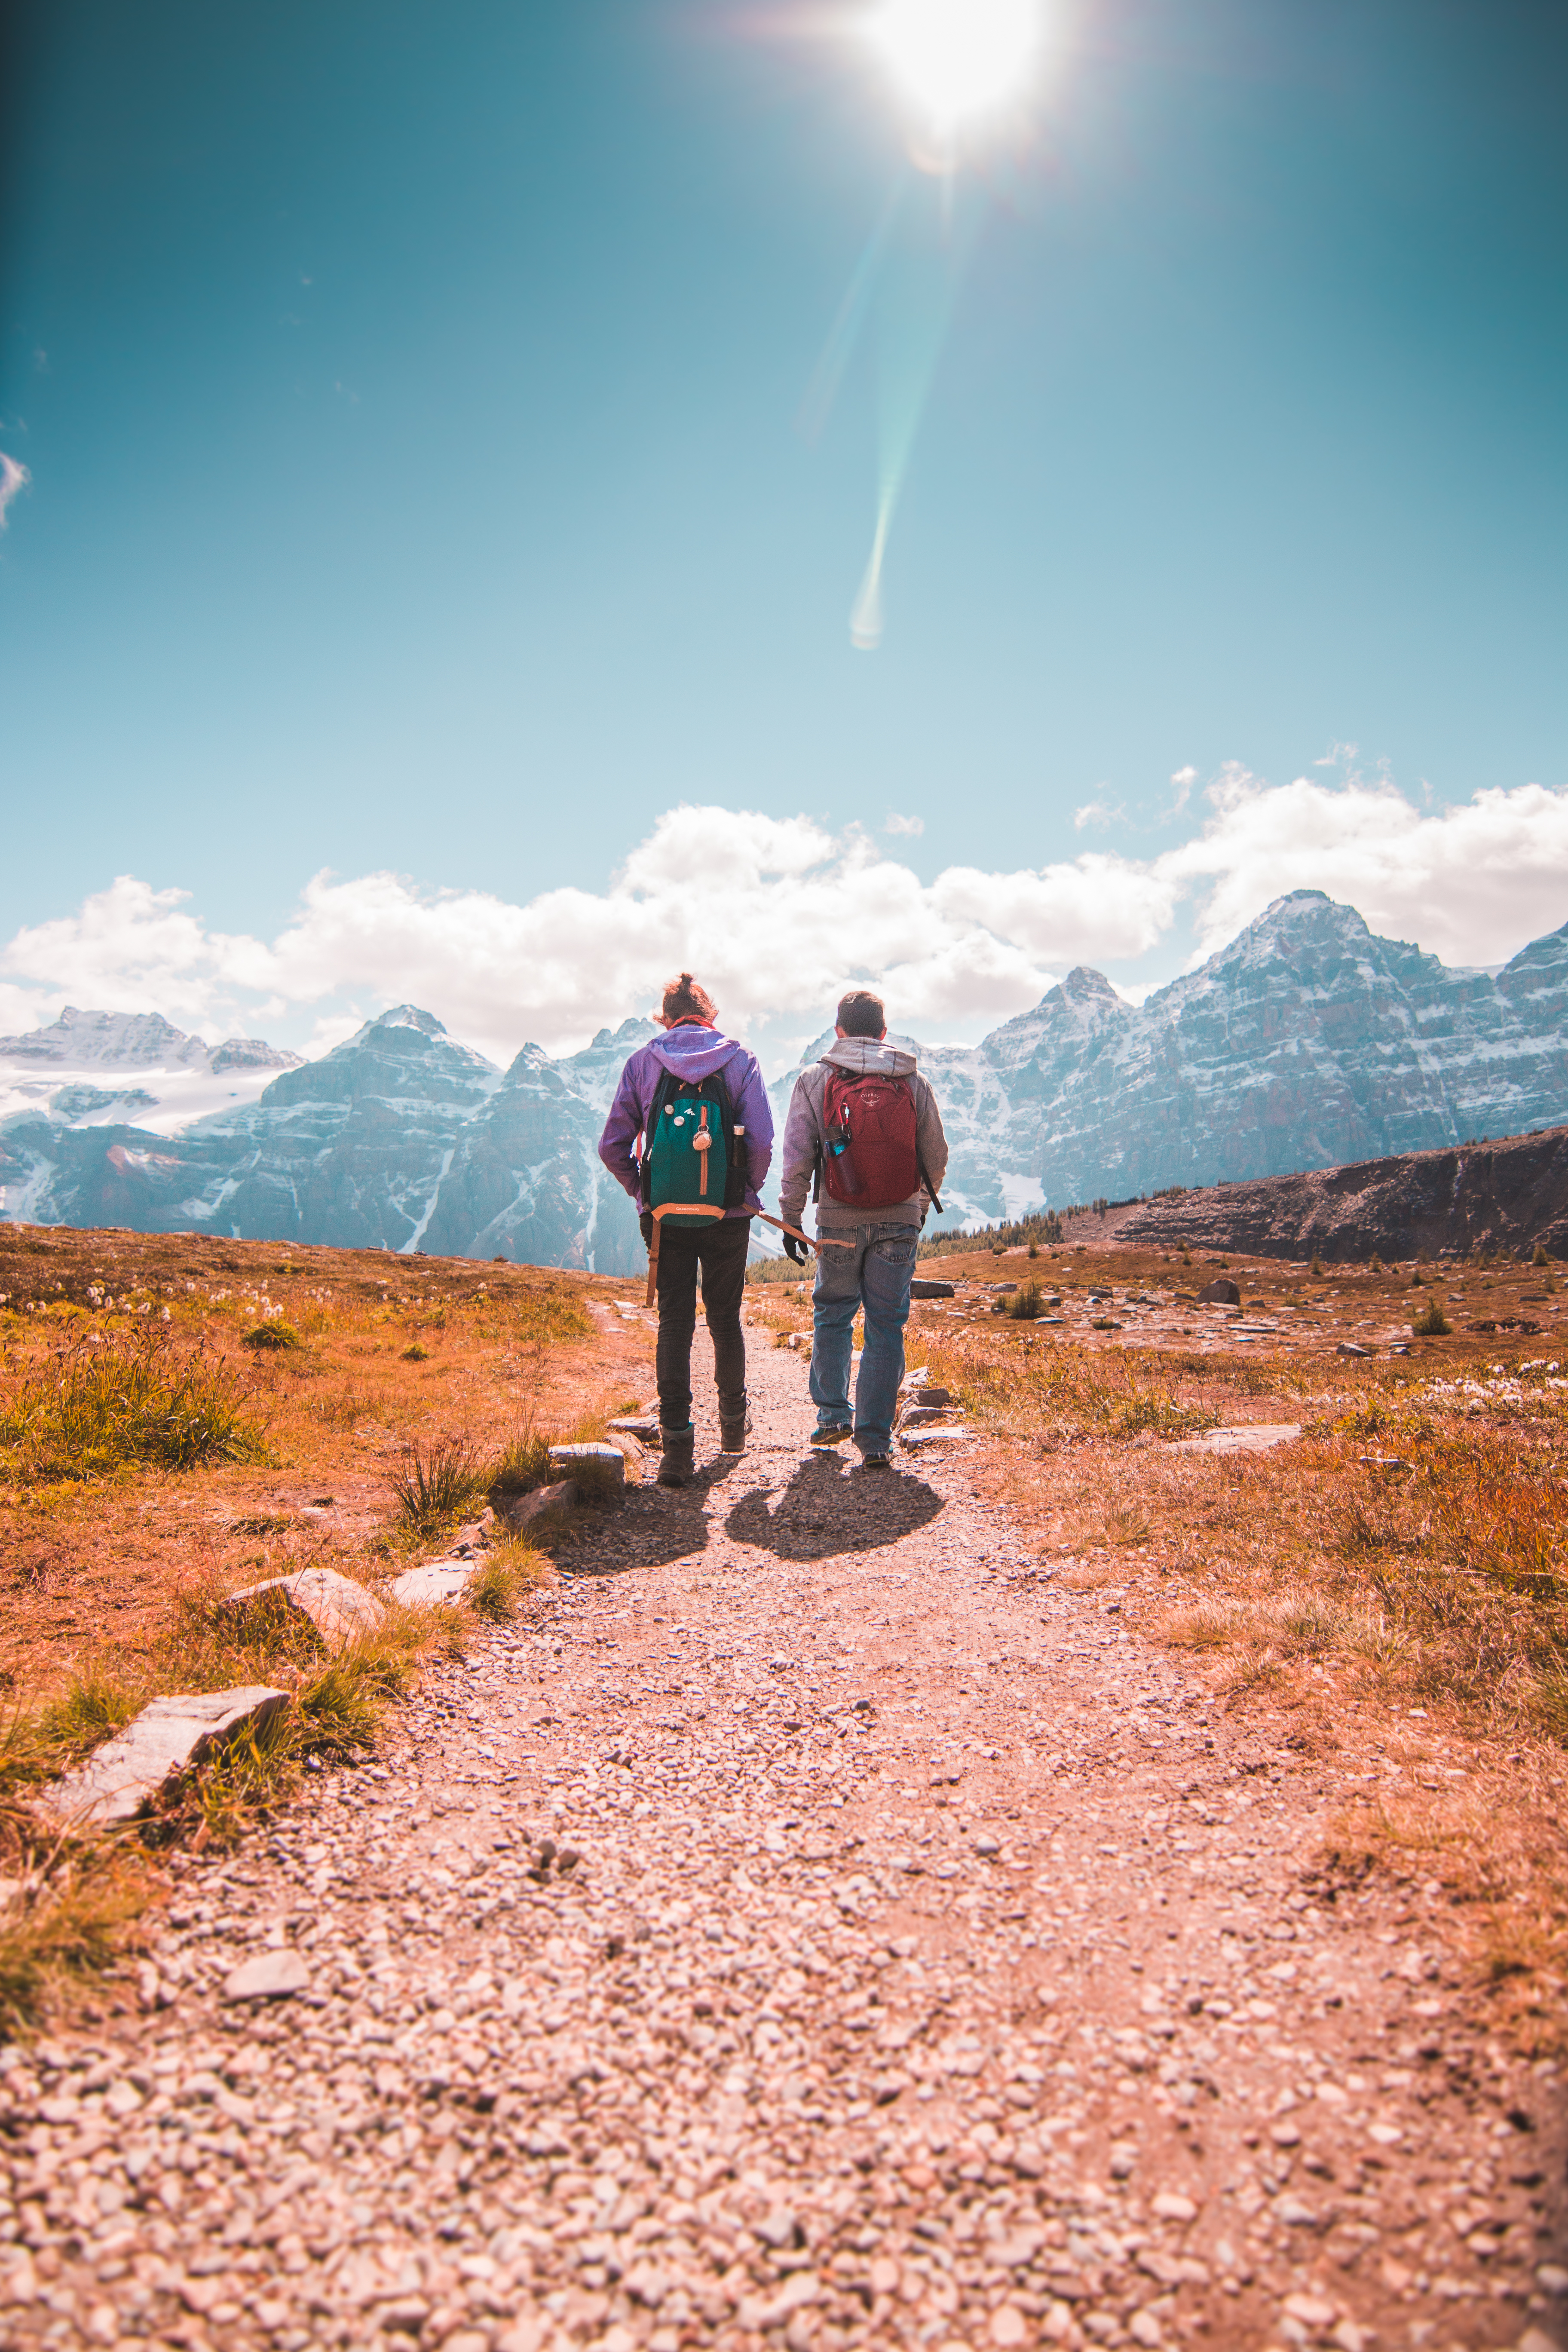 Two Person Walking on Unpaved Road